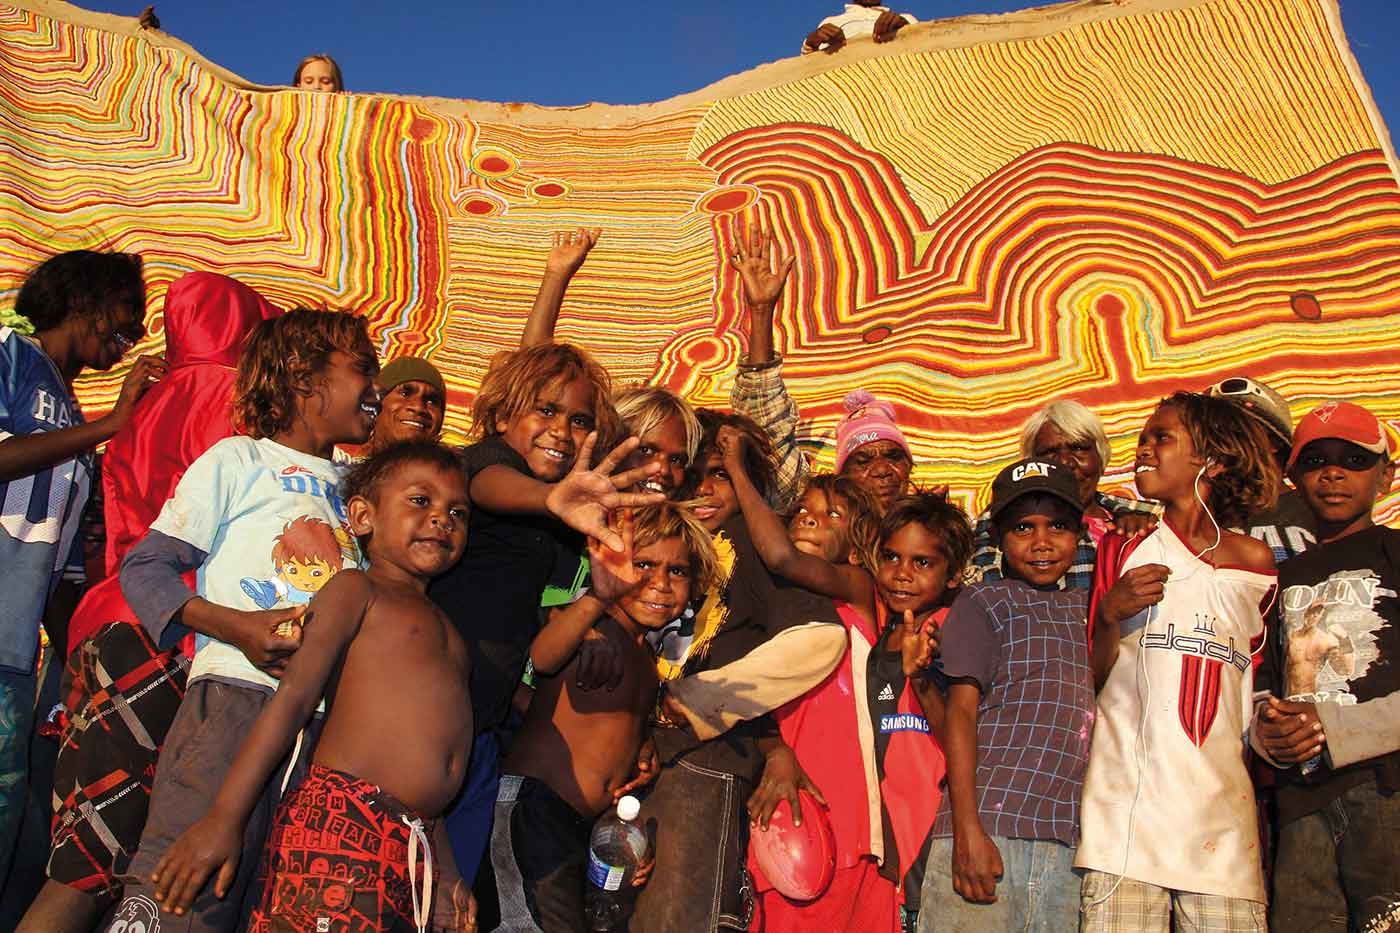 Martu Kids and artists in front of the painting Martumili Ngurra.